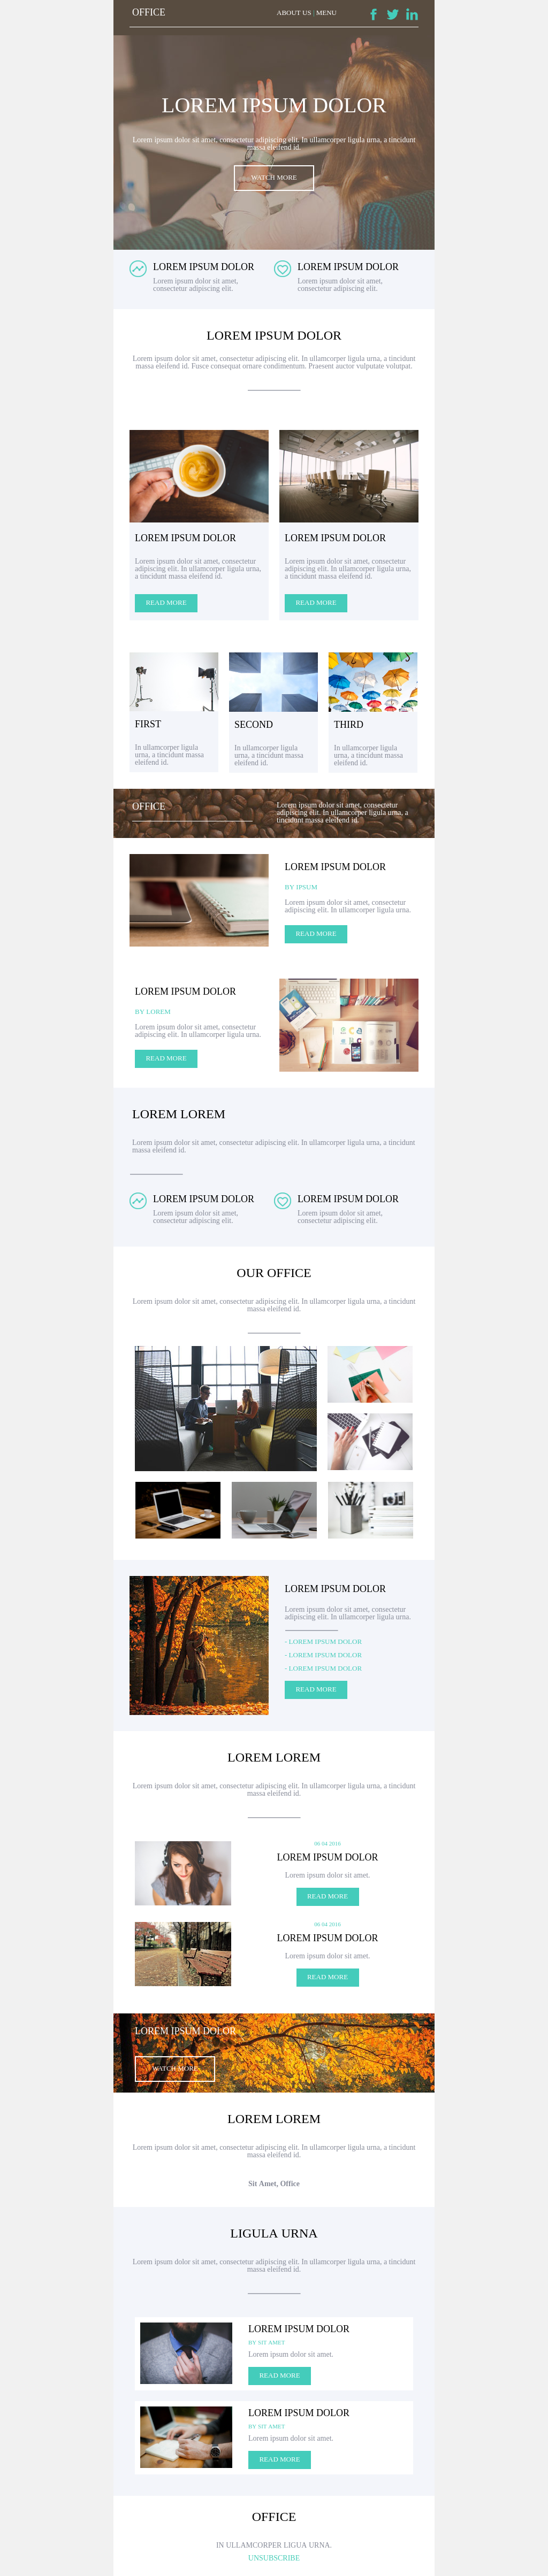 Laid back office template for businesses